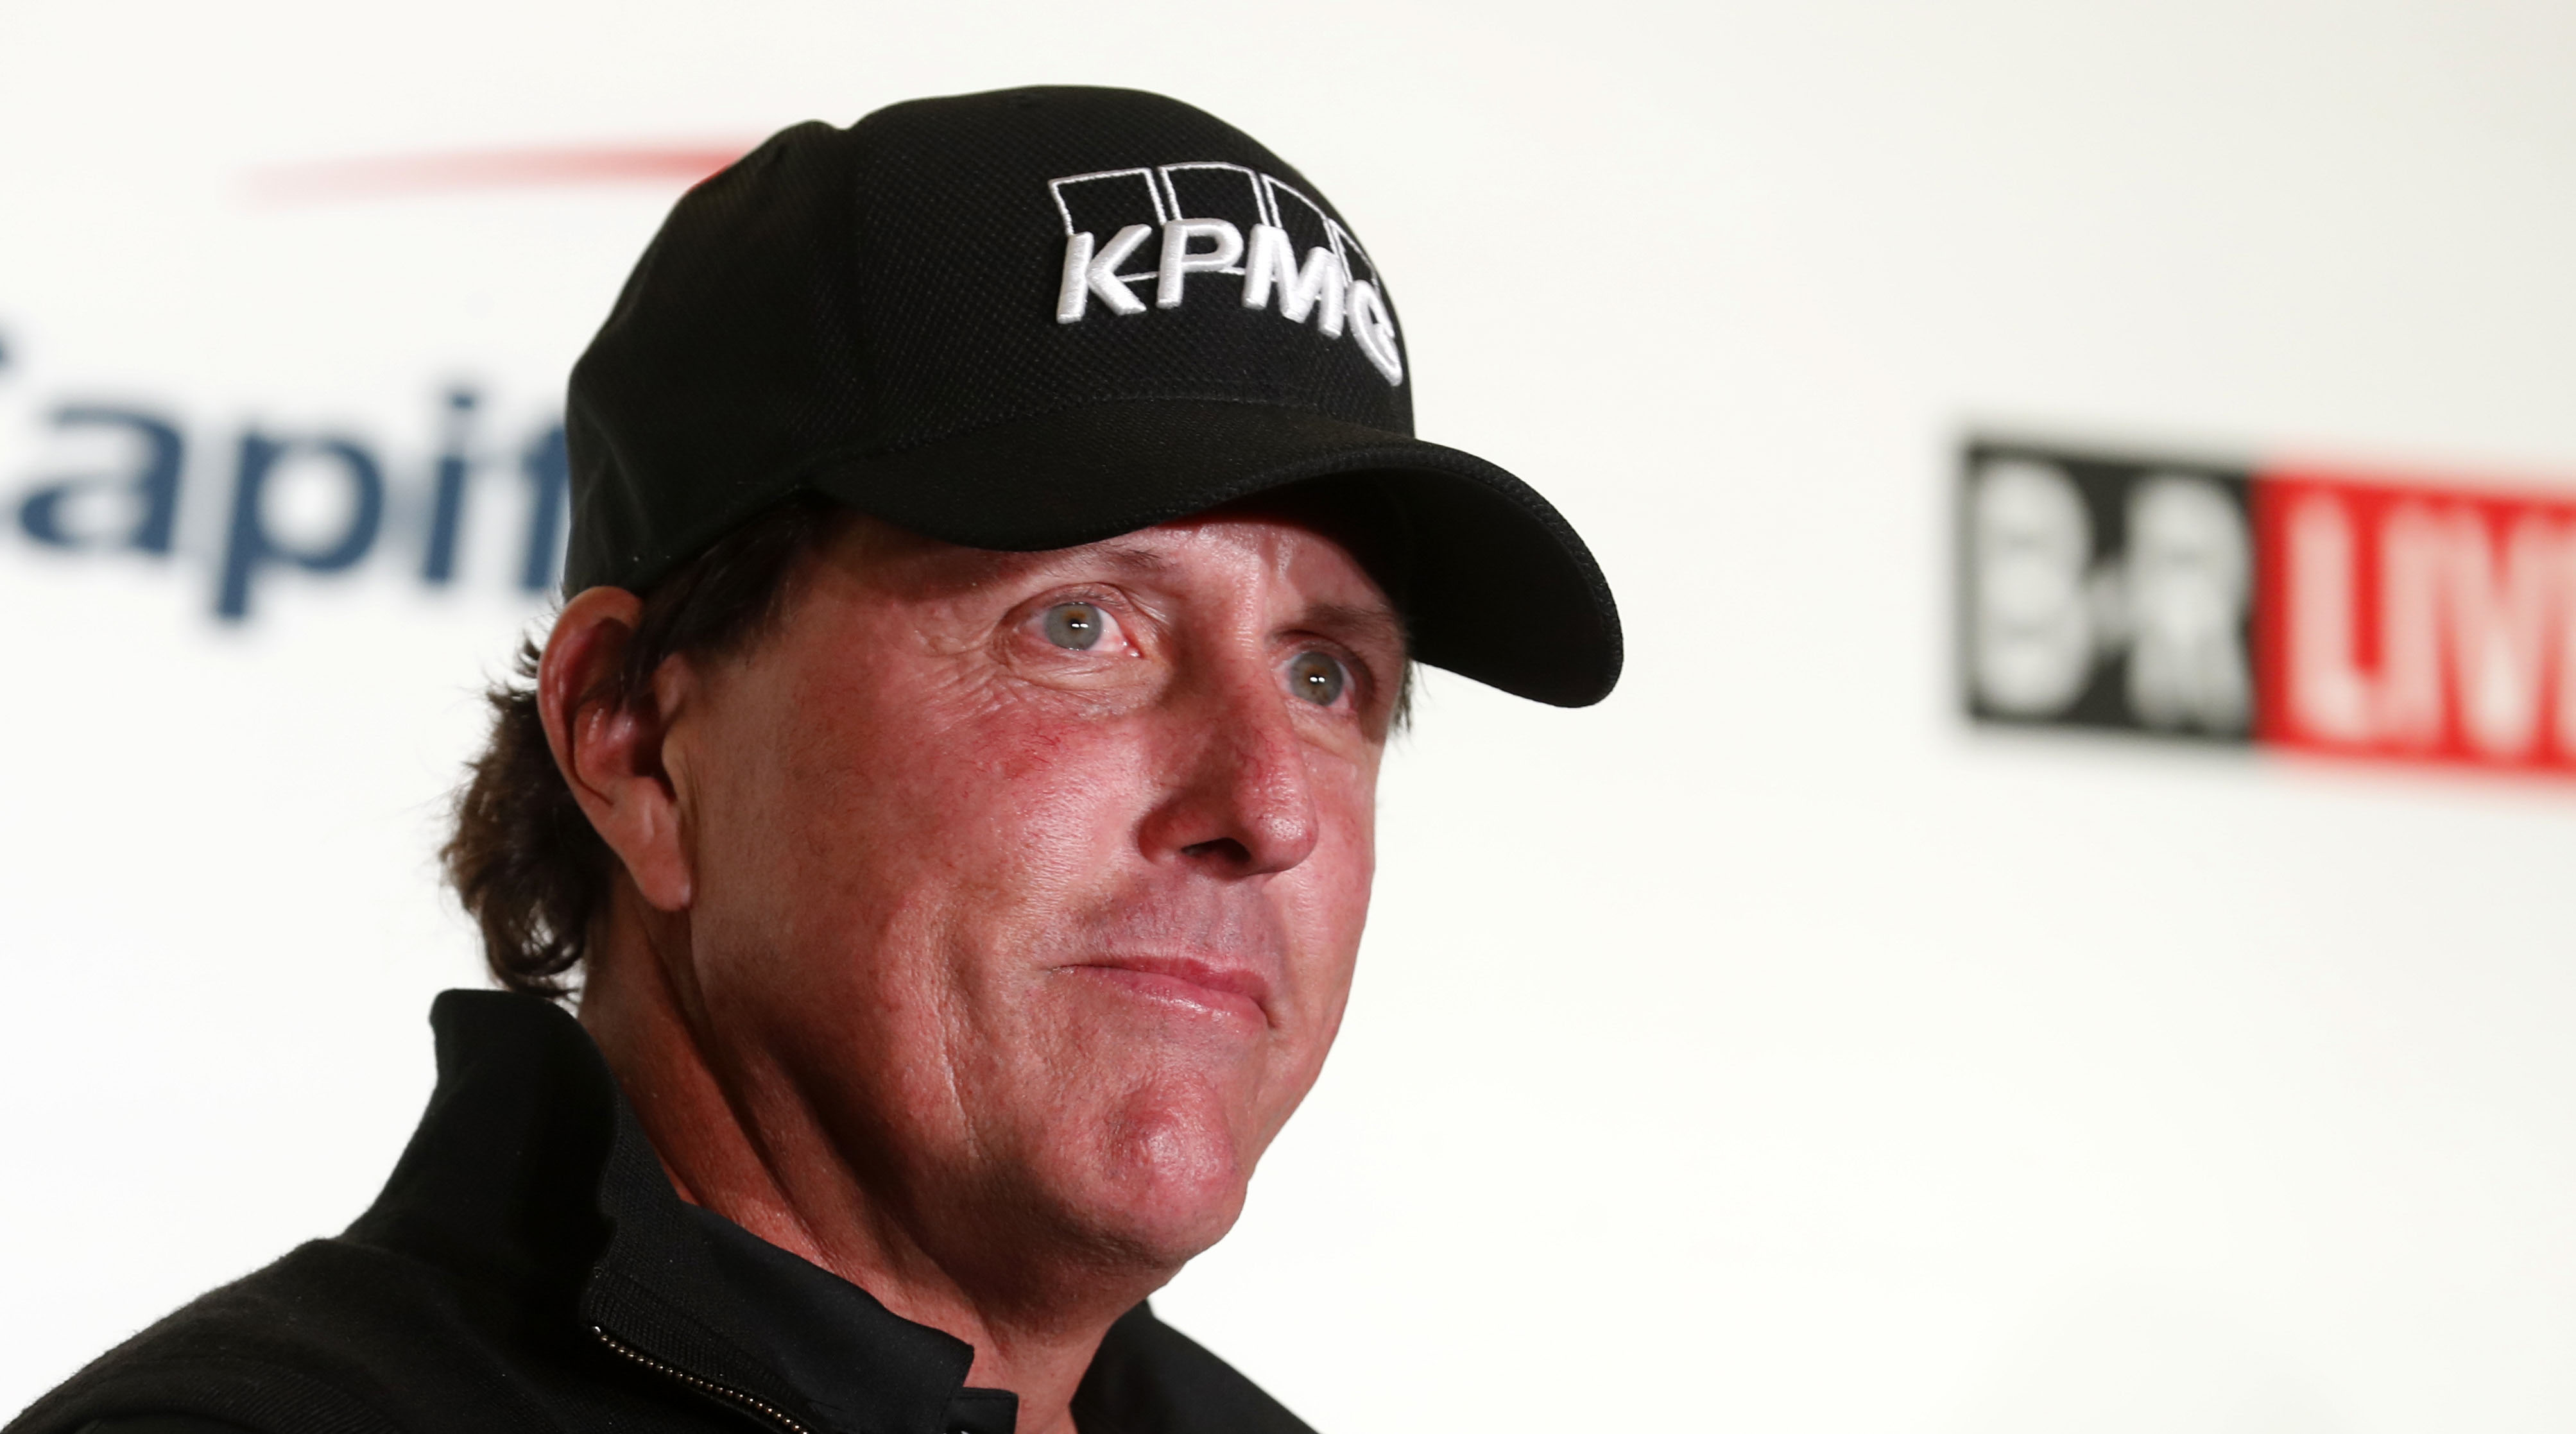 phil mickelson jake owen tiger woods match pay per view